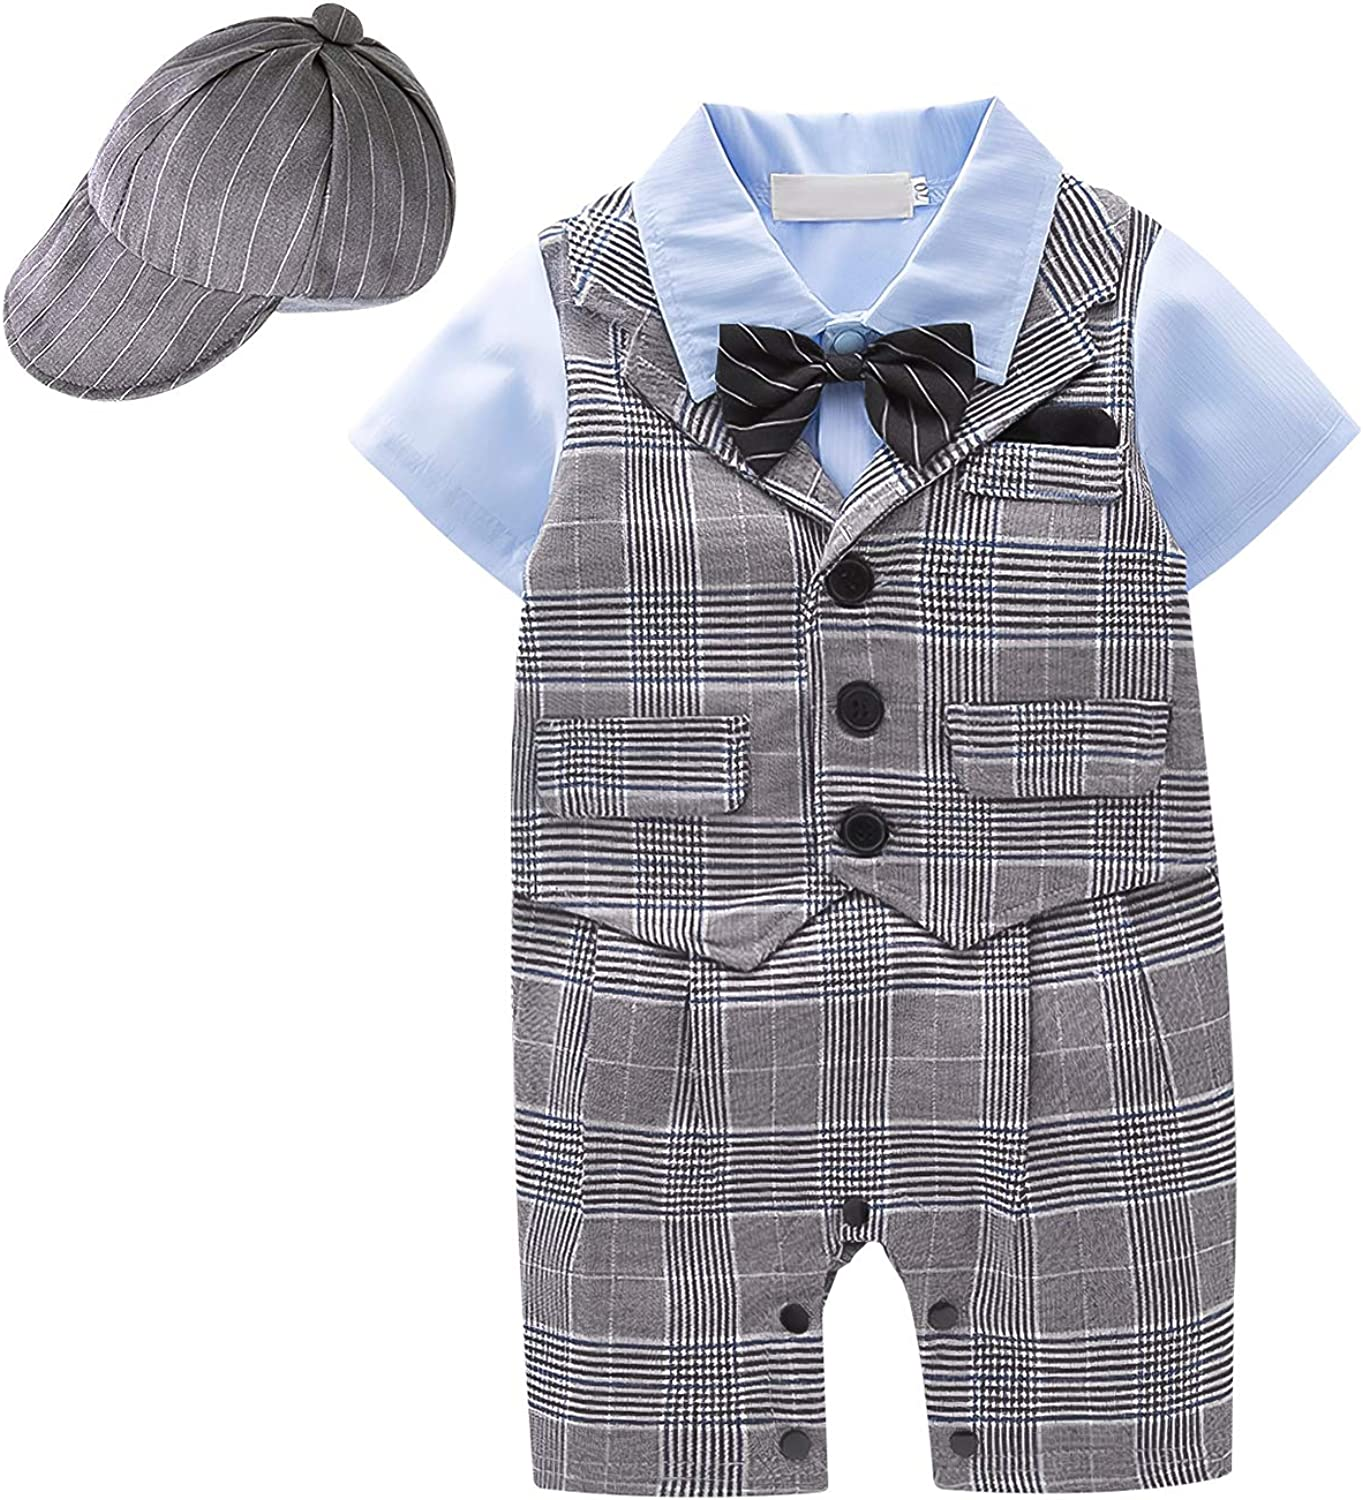 Summer Baby Boy Short Set 3pcs Short Sleeves Gentleman Jumpsuit+ Bowtie+ Hat Baby Boy Outfits Suit Set